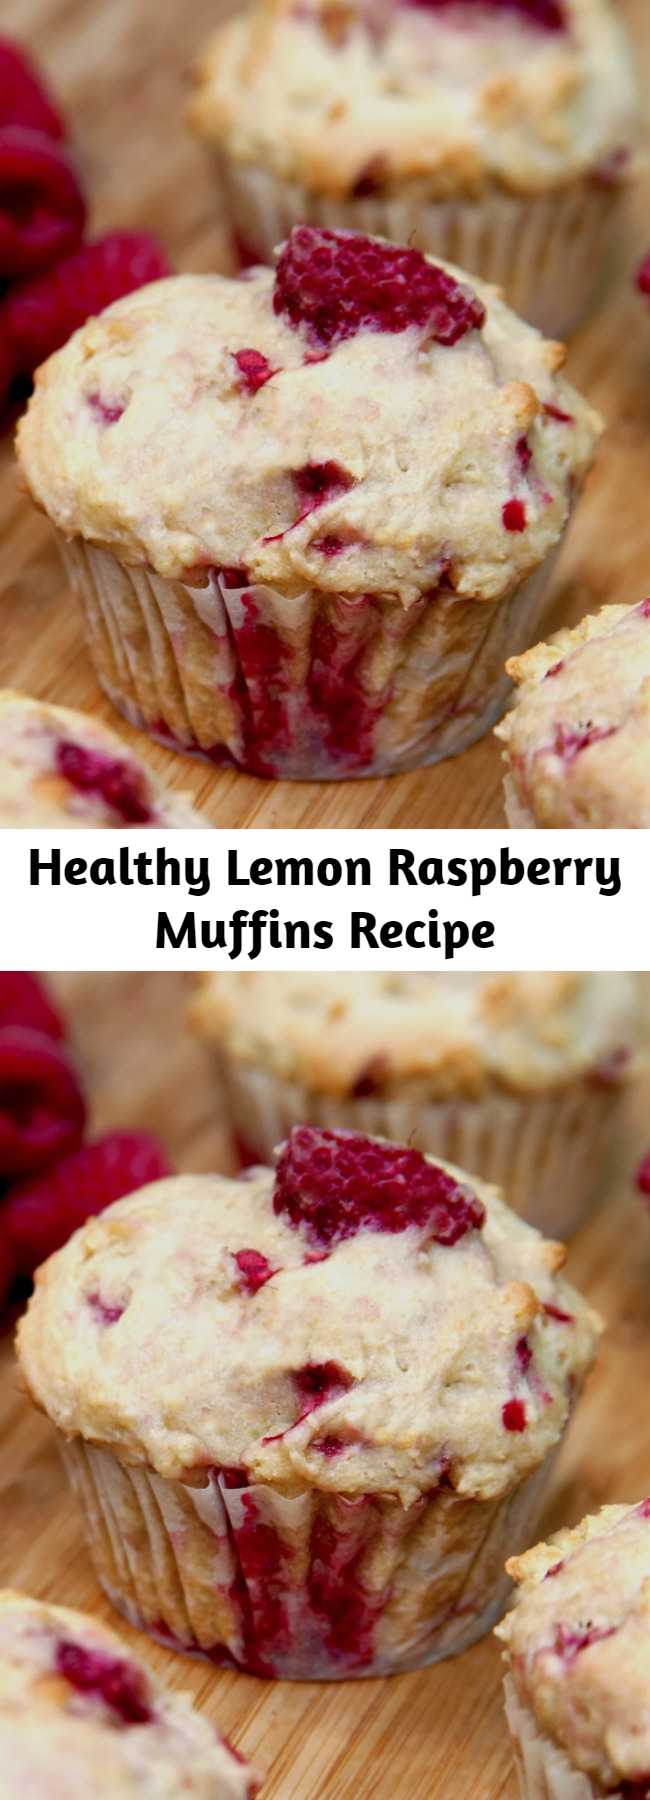 Healthy Lemon Raspberry Muffins Recipe - Berries are finally in season! Pick up a pint, and make these moist and naturally sweet muffins. Made with Greek yogurt instead of buttermilk, they're a tasty way to get some protein without all the fat. These are so light and summery, with bursts of juicy raspberries — perfect to grab with your morning smoothie or to bake up for a weekend brunch.